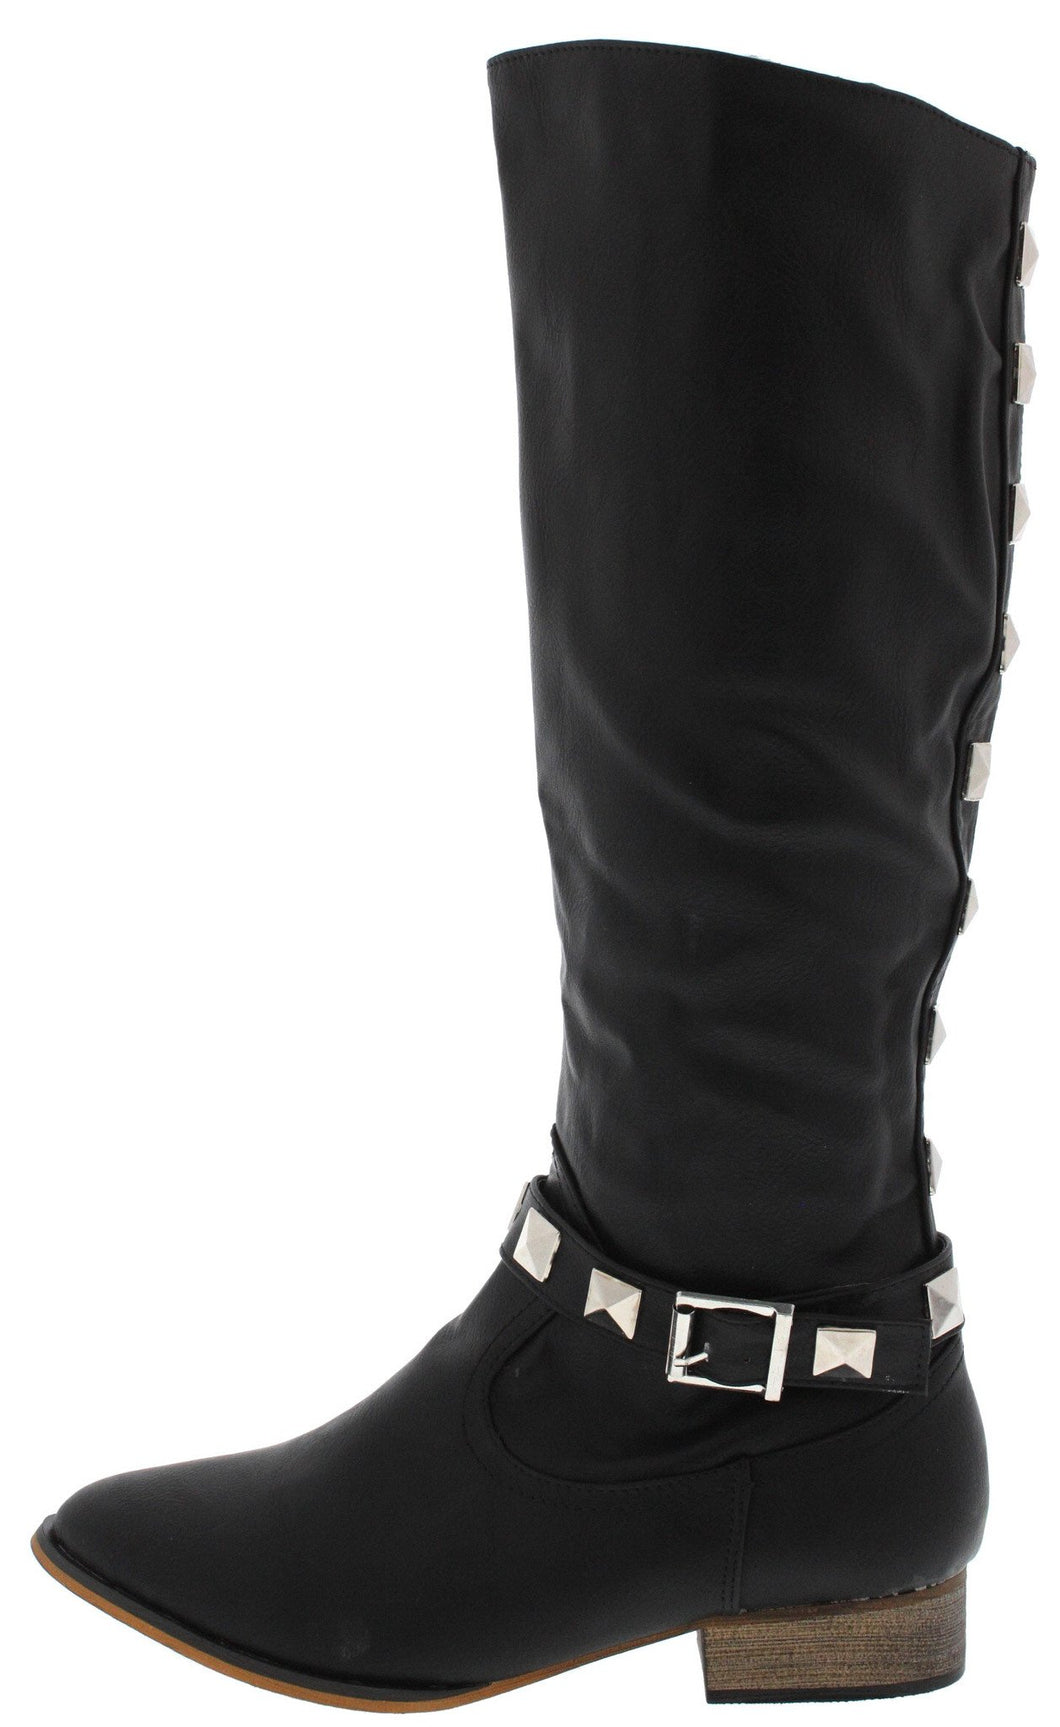 Dalton2 Black Studded Riding Boot